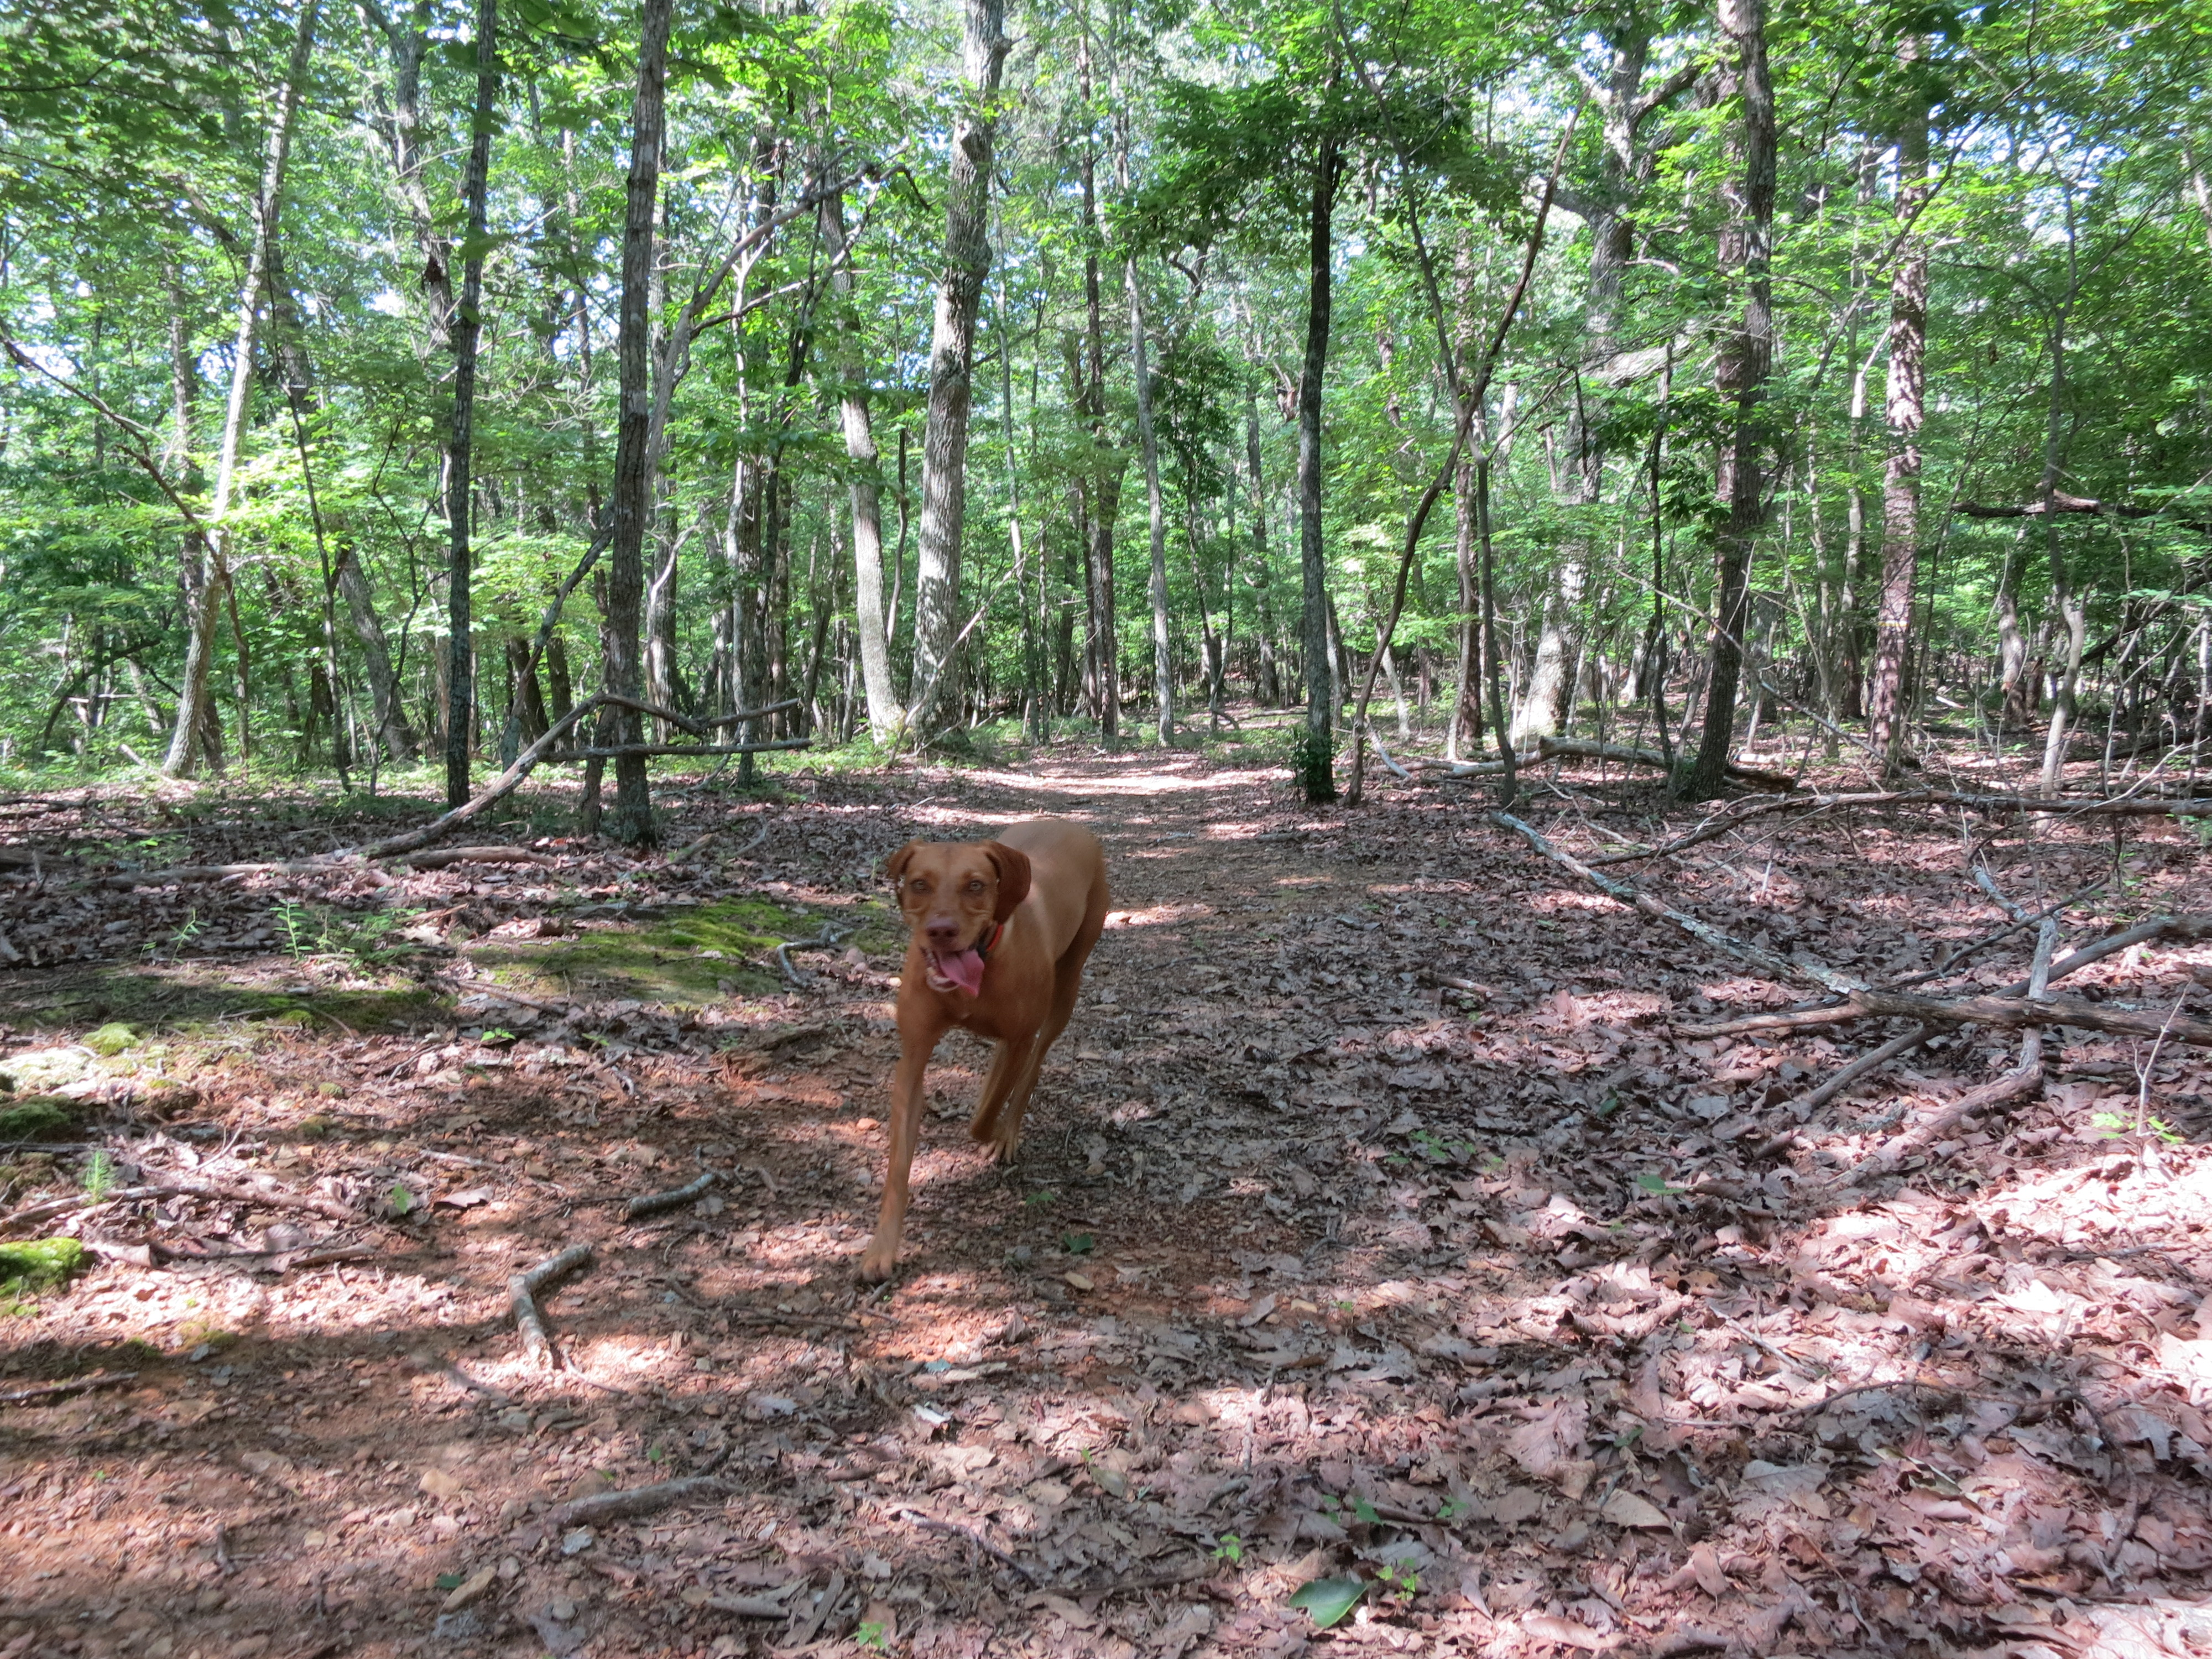 Rōmr – Private Land for Off Leash Dog Hikes!